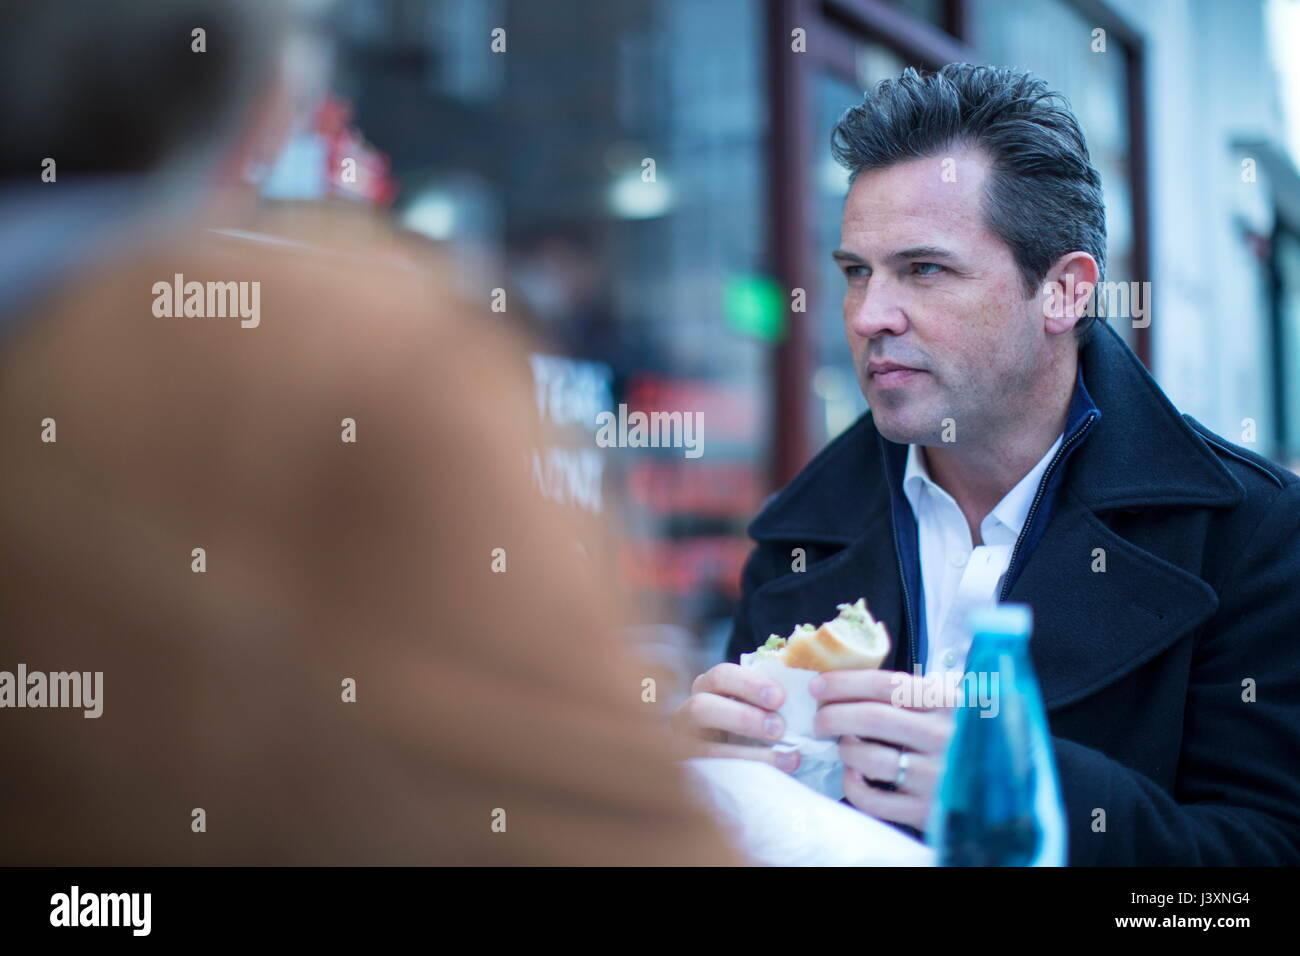 Businesspeople at pavement cafe having lunch - Stock Image